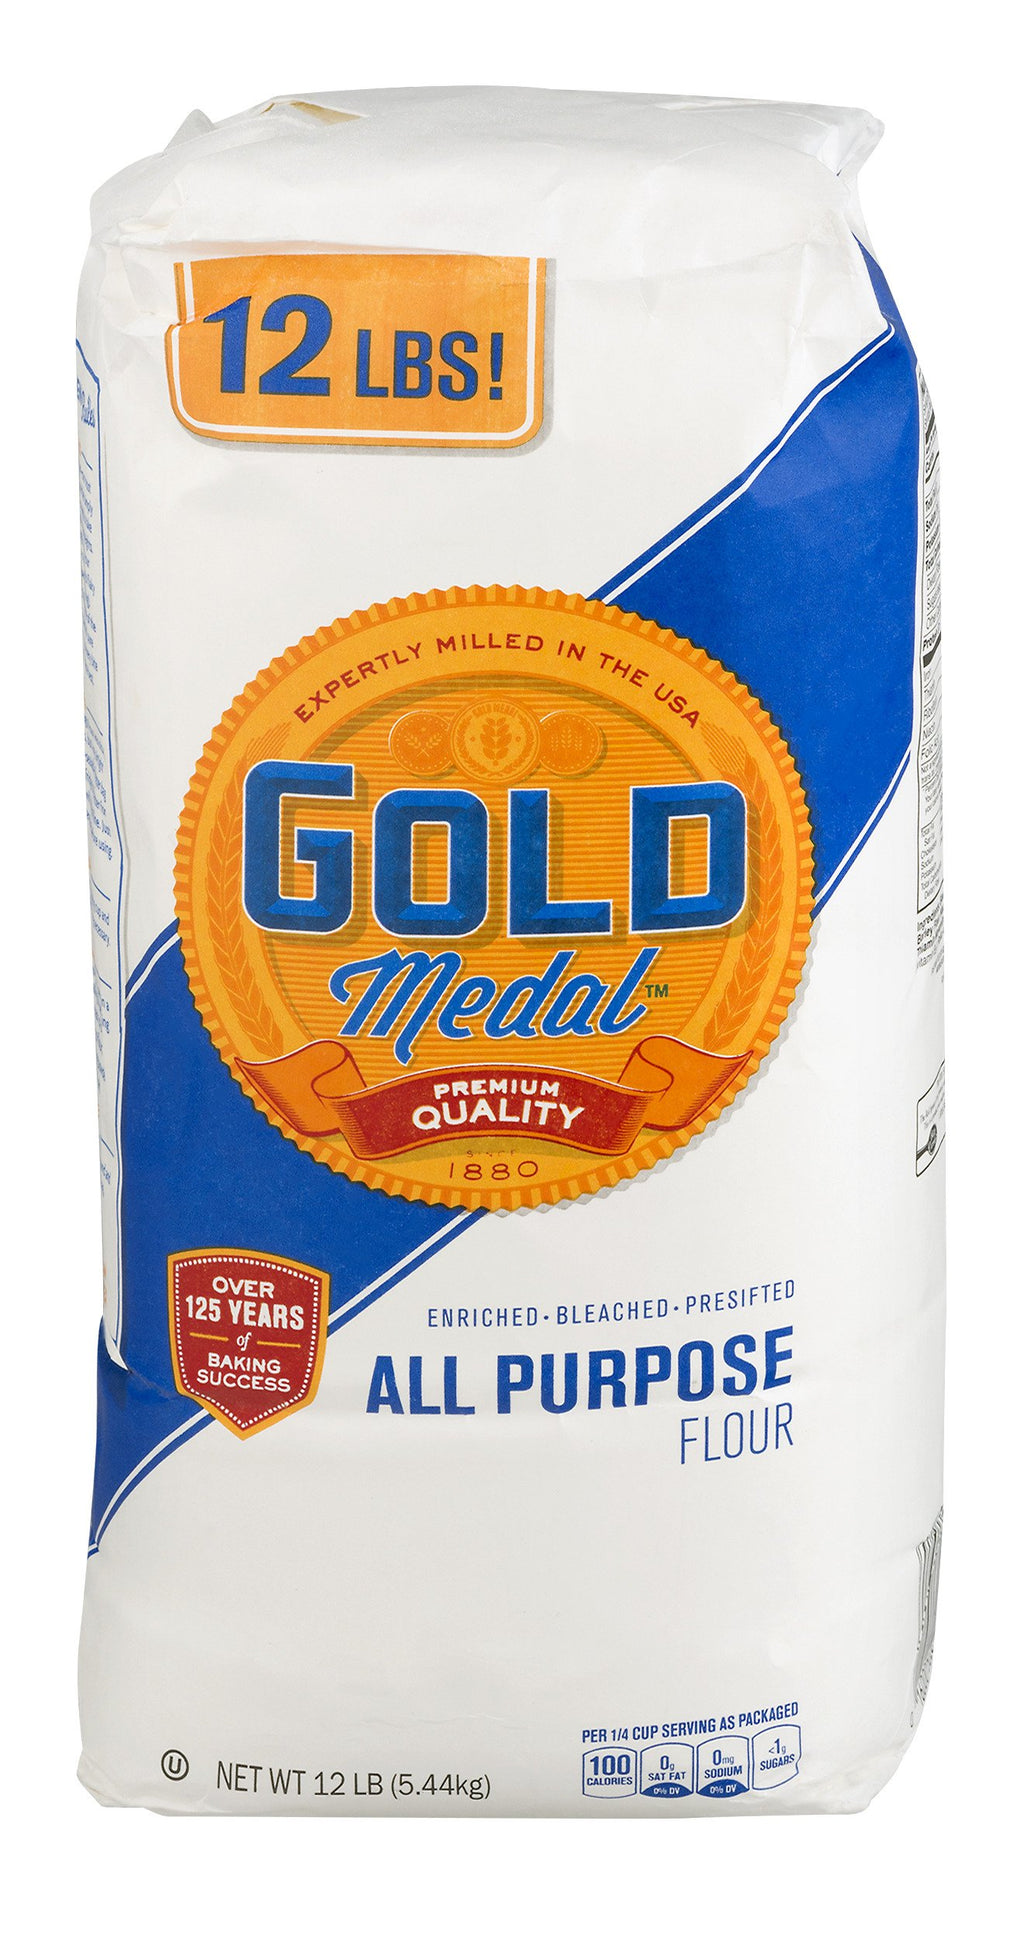 Gold Medal All Purpose Flour (12 lbs)